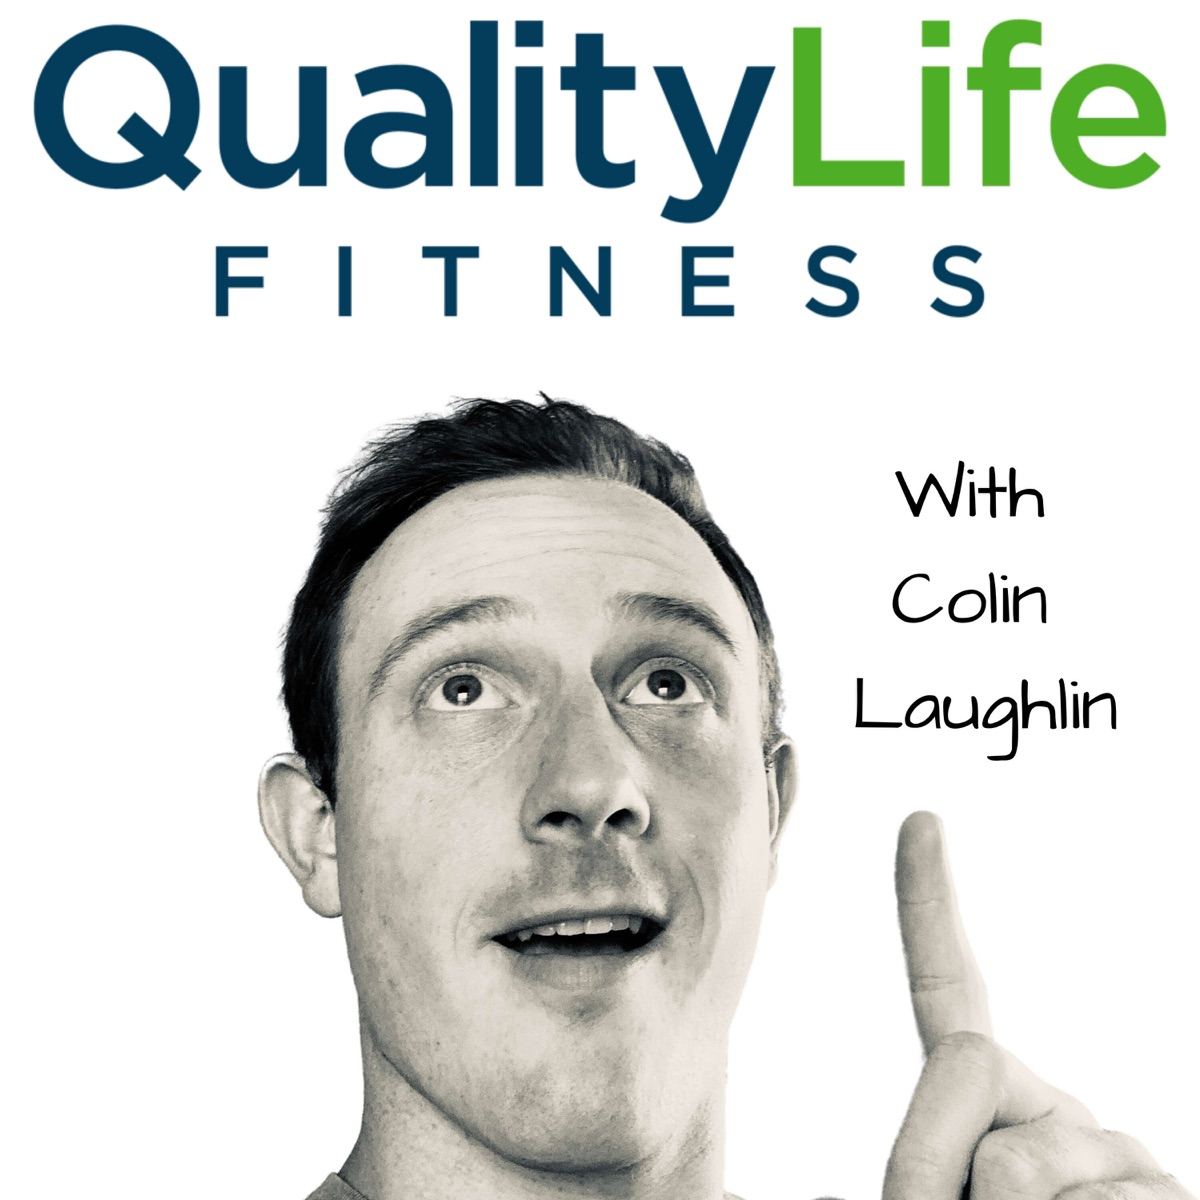 QualityLife Fitness With Colin Laughlin